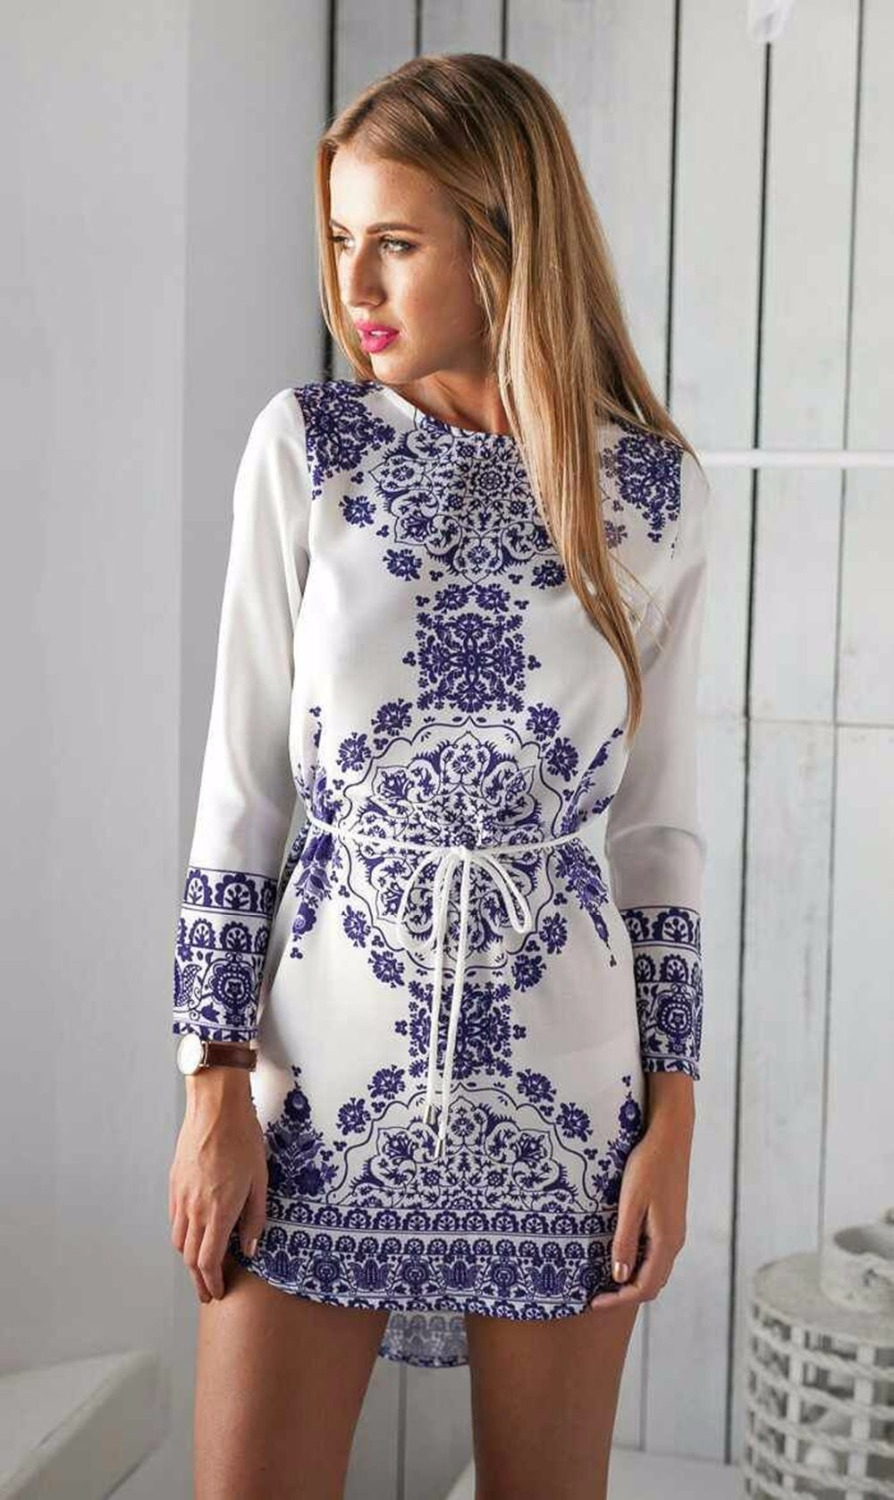 New new women long sleeve blue and white vintage porcelain flower 2017 new summer women dress plus size long sleeve print tunic ladies casual dresses white o izmirmasajfo